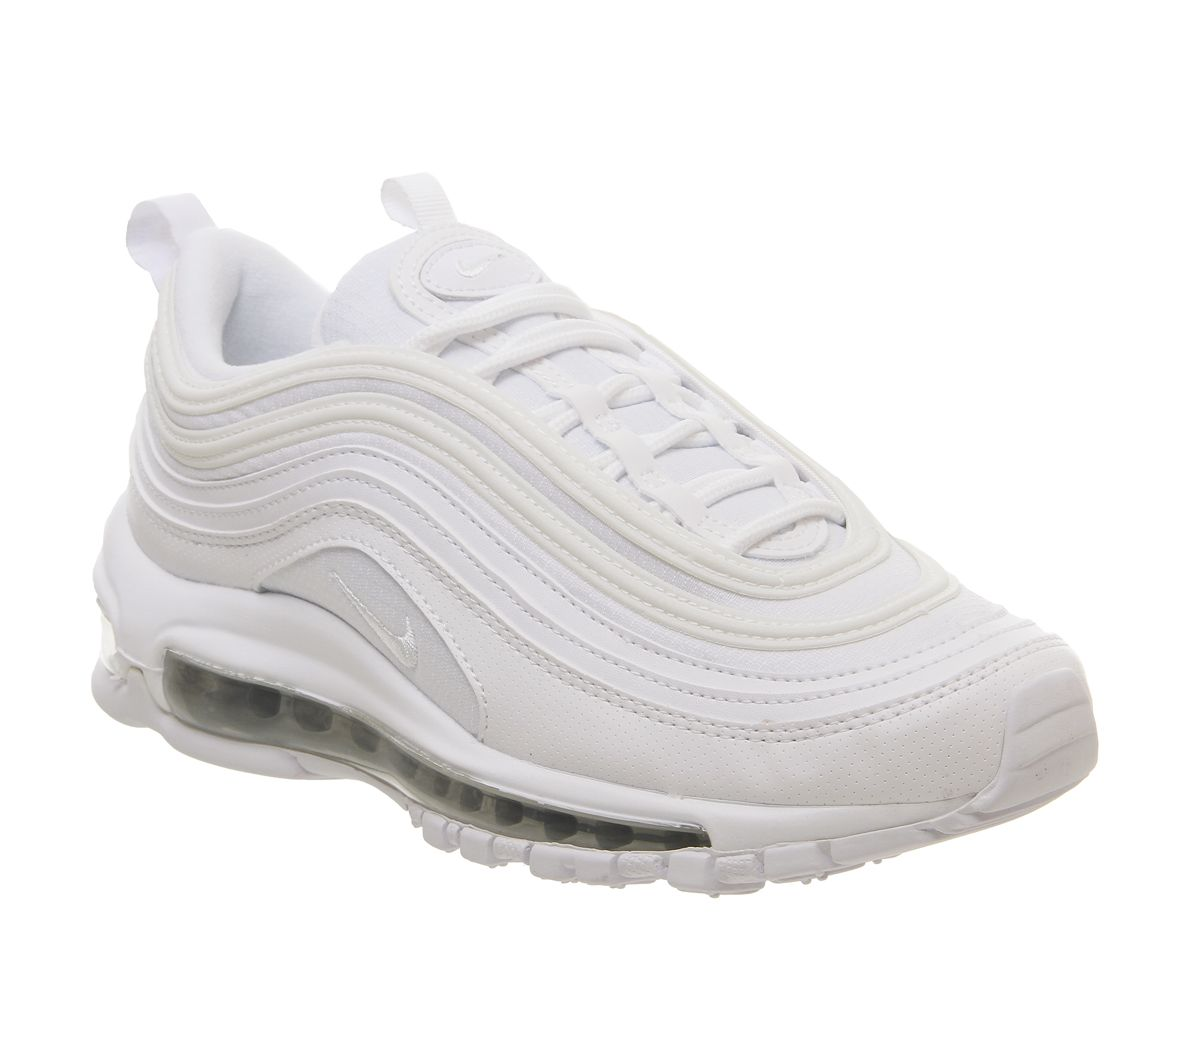 dd81988b4c Nike Air Max 97 Gs Trainers White White Metallic Silver - Hers trainers